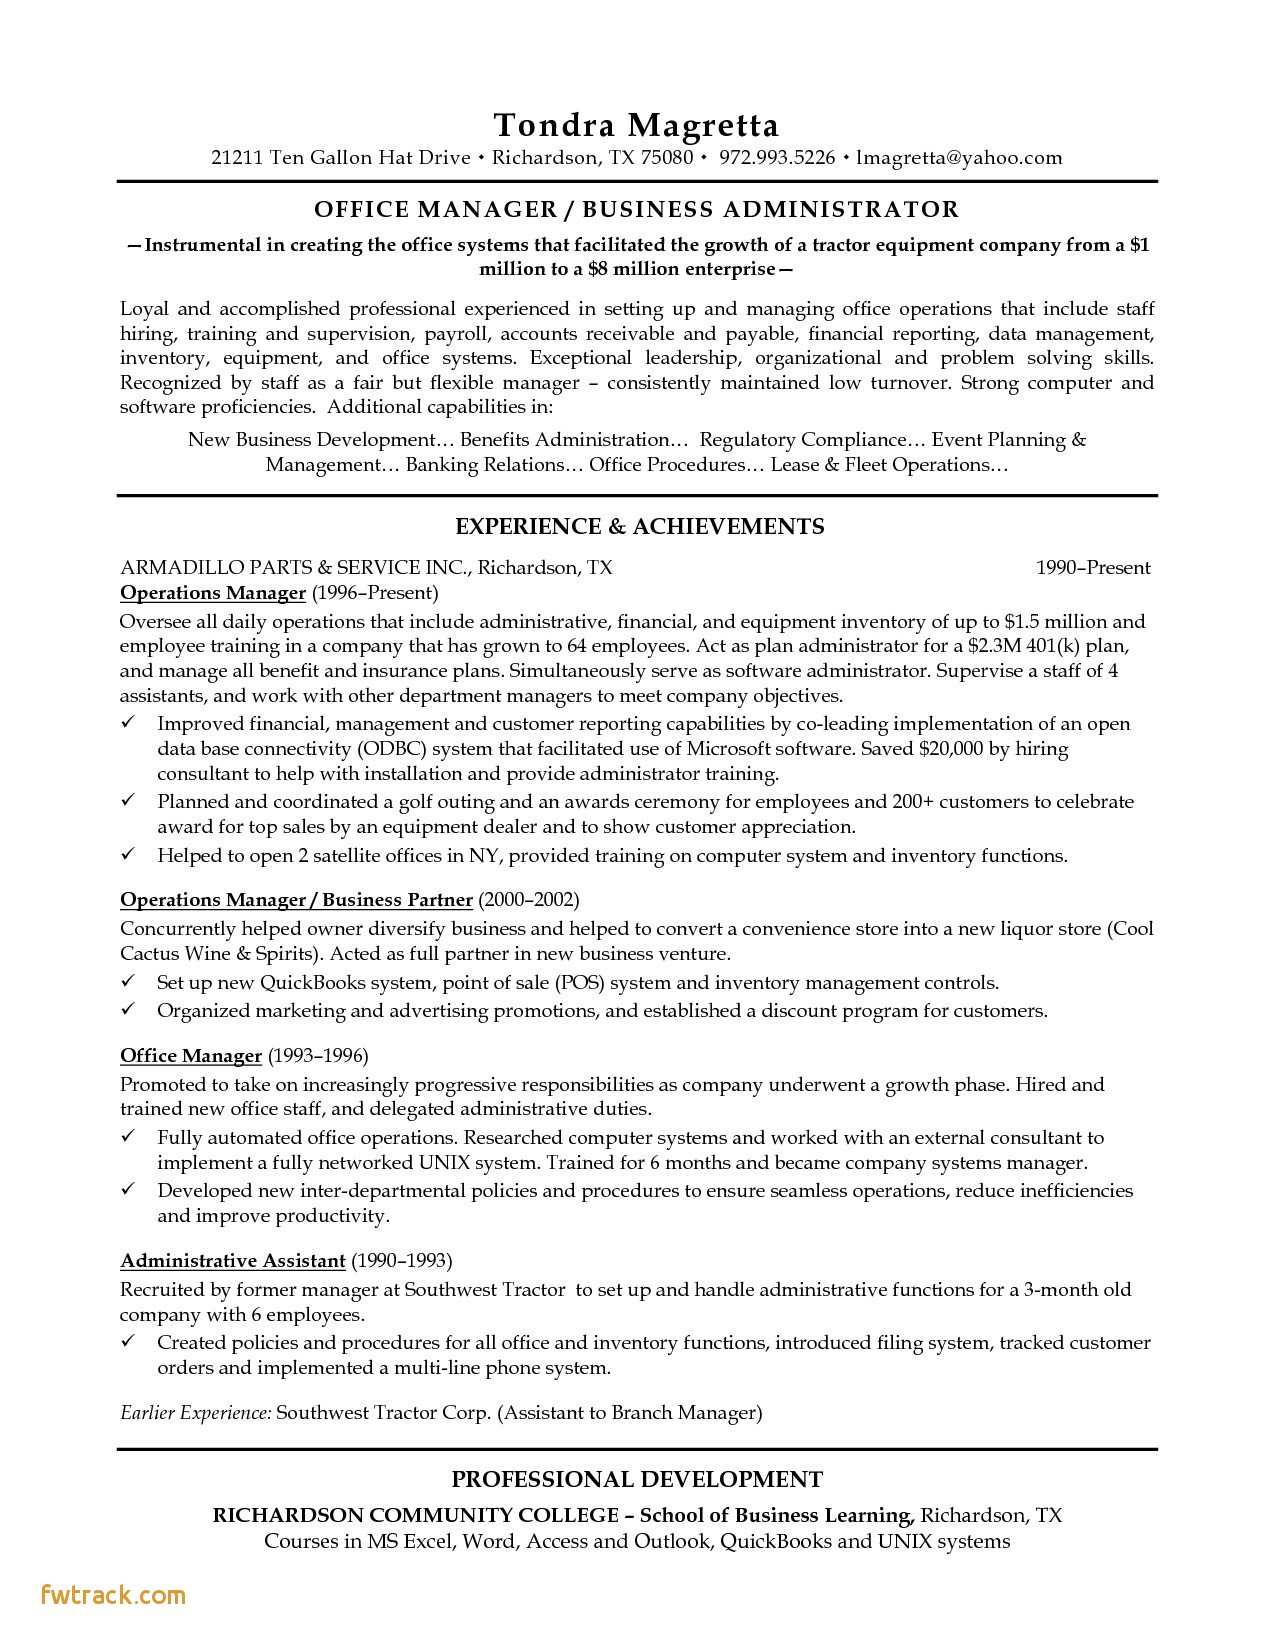 Retail Store Resume - Resume Examples for Retail Fwtrack Fwtrack